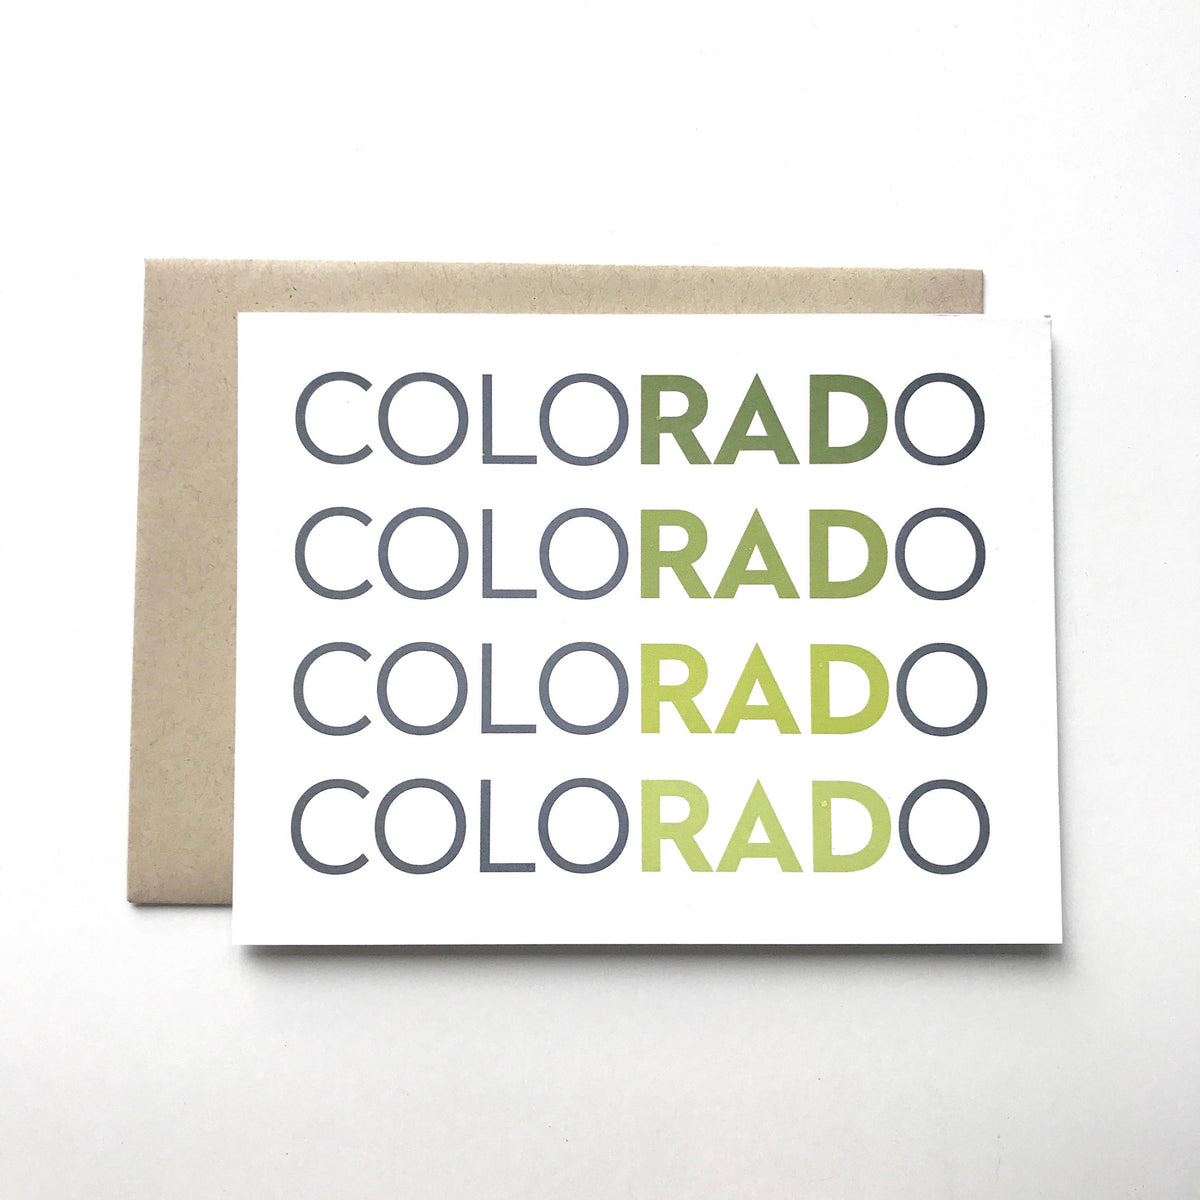 Colorado is RAD card